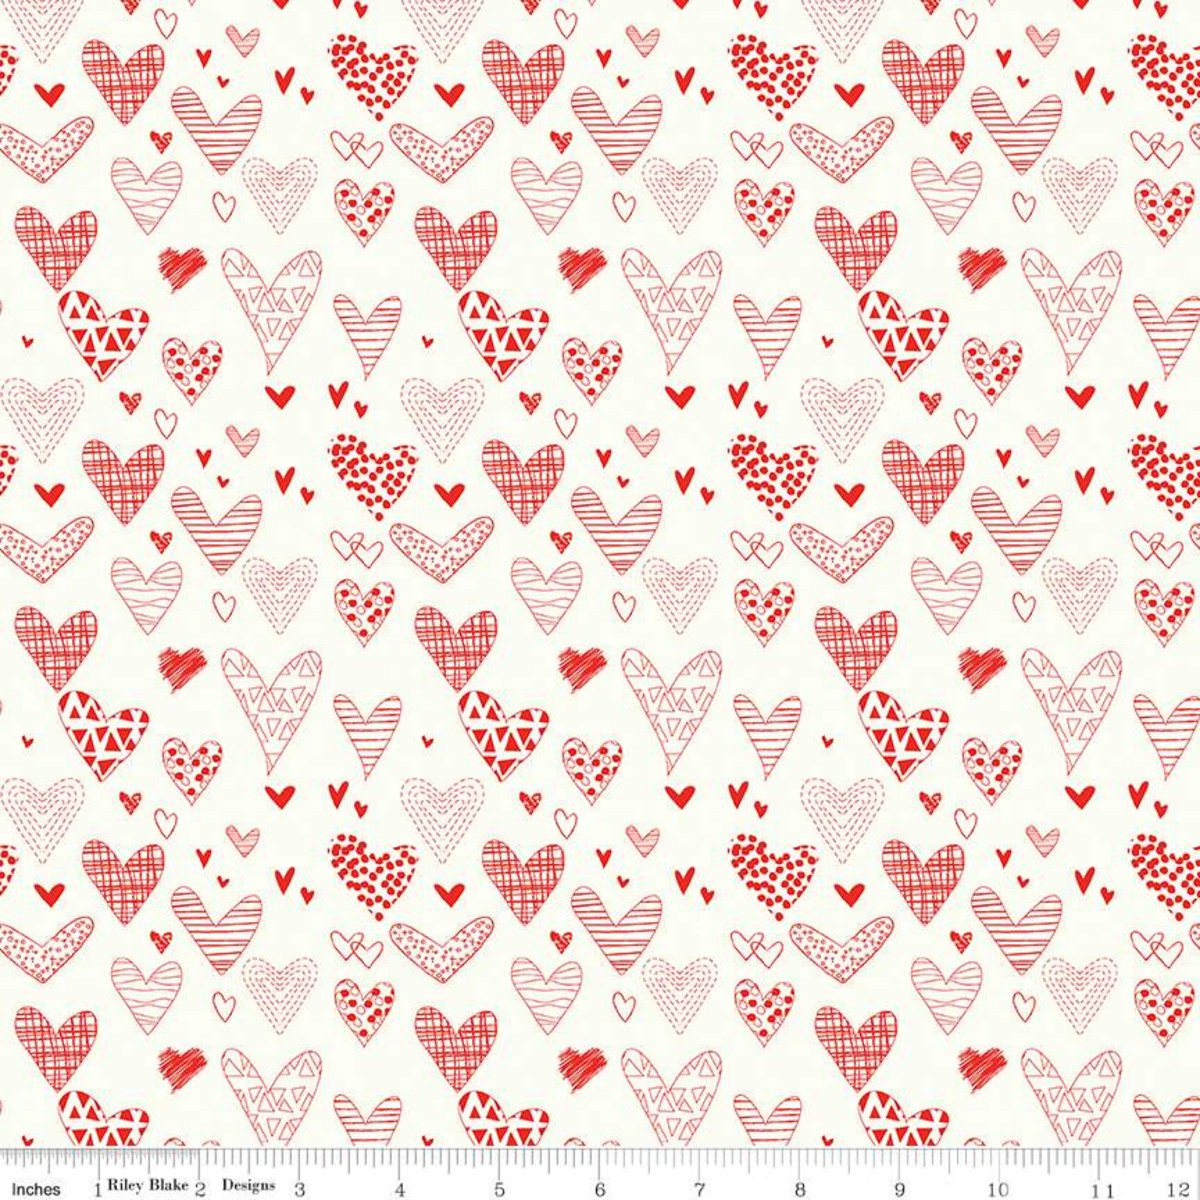 From The Heart C10051-CREAM